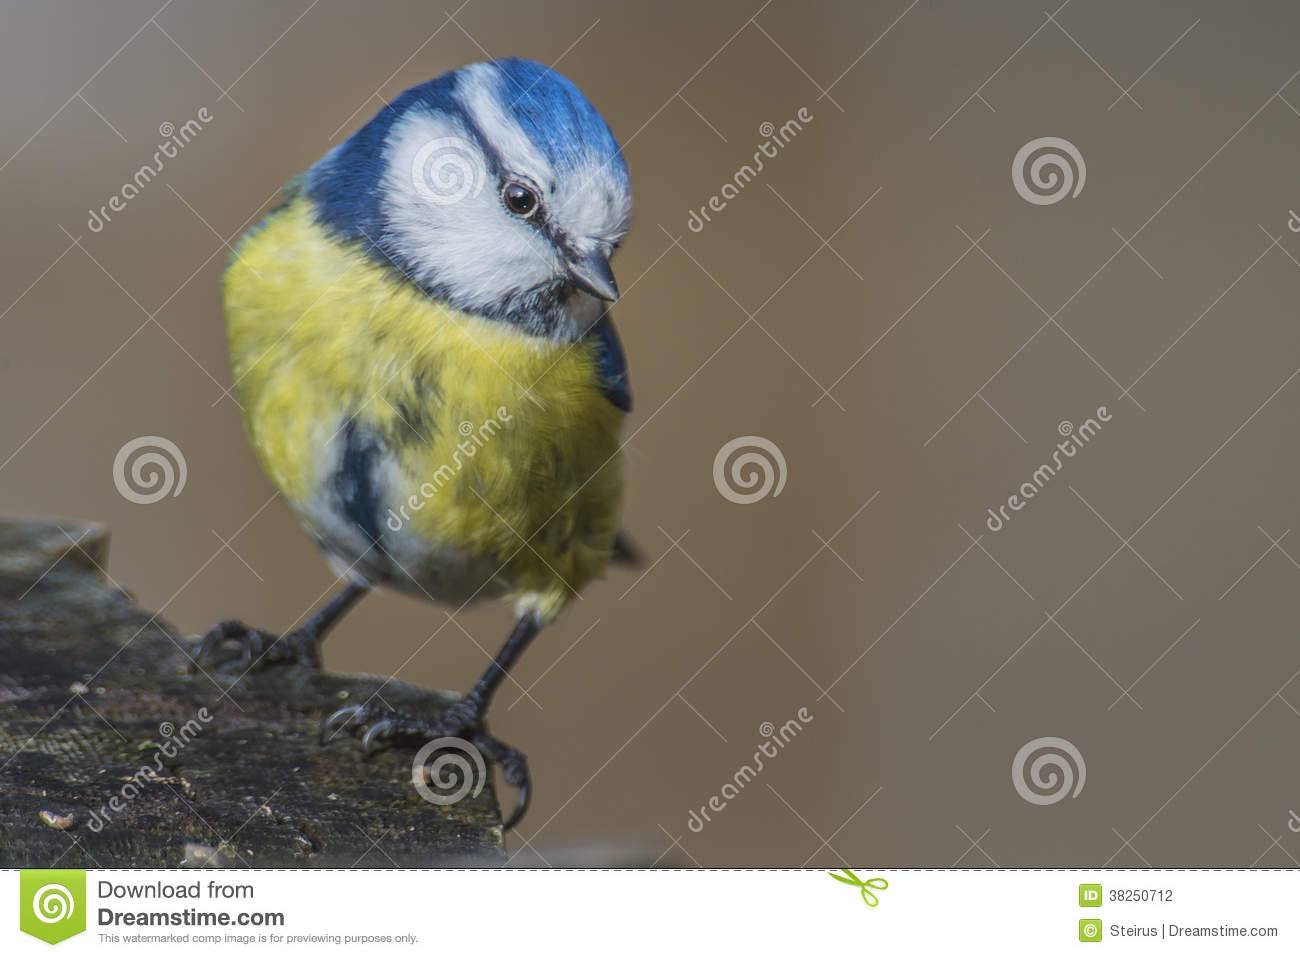 Eurasian Blue Tit clipart #3, Download drawings